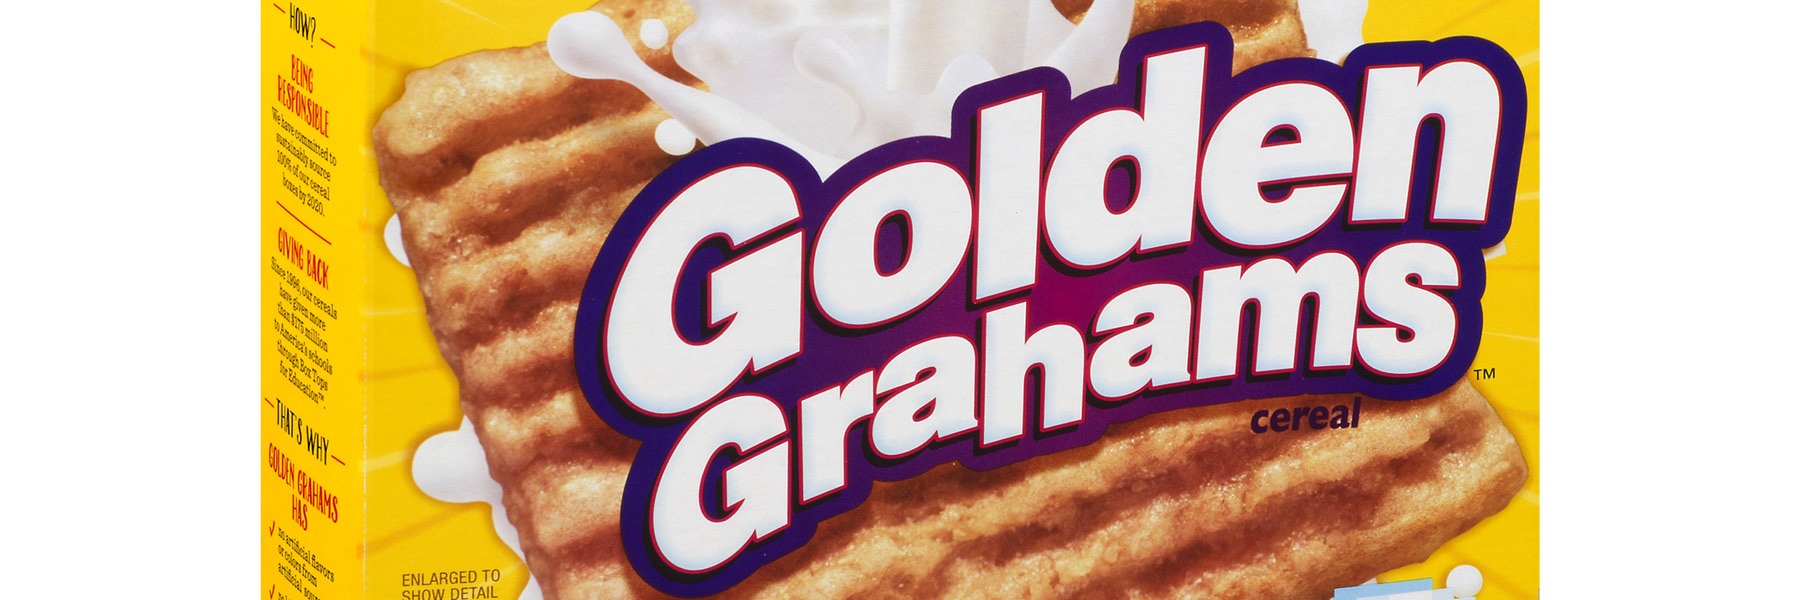 cereal box of Golden Grahams